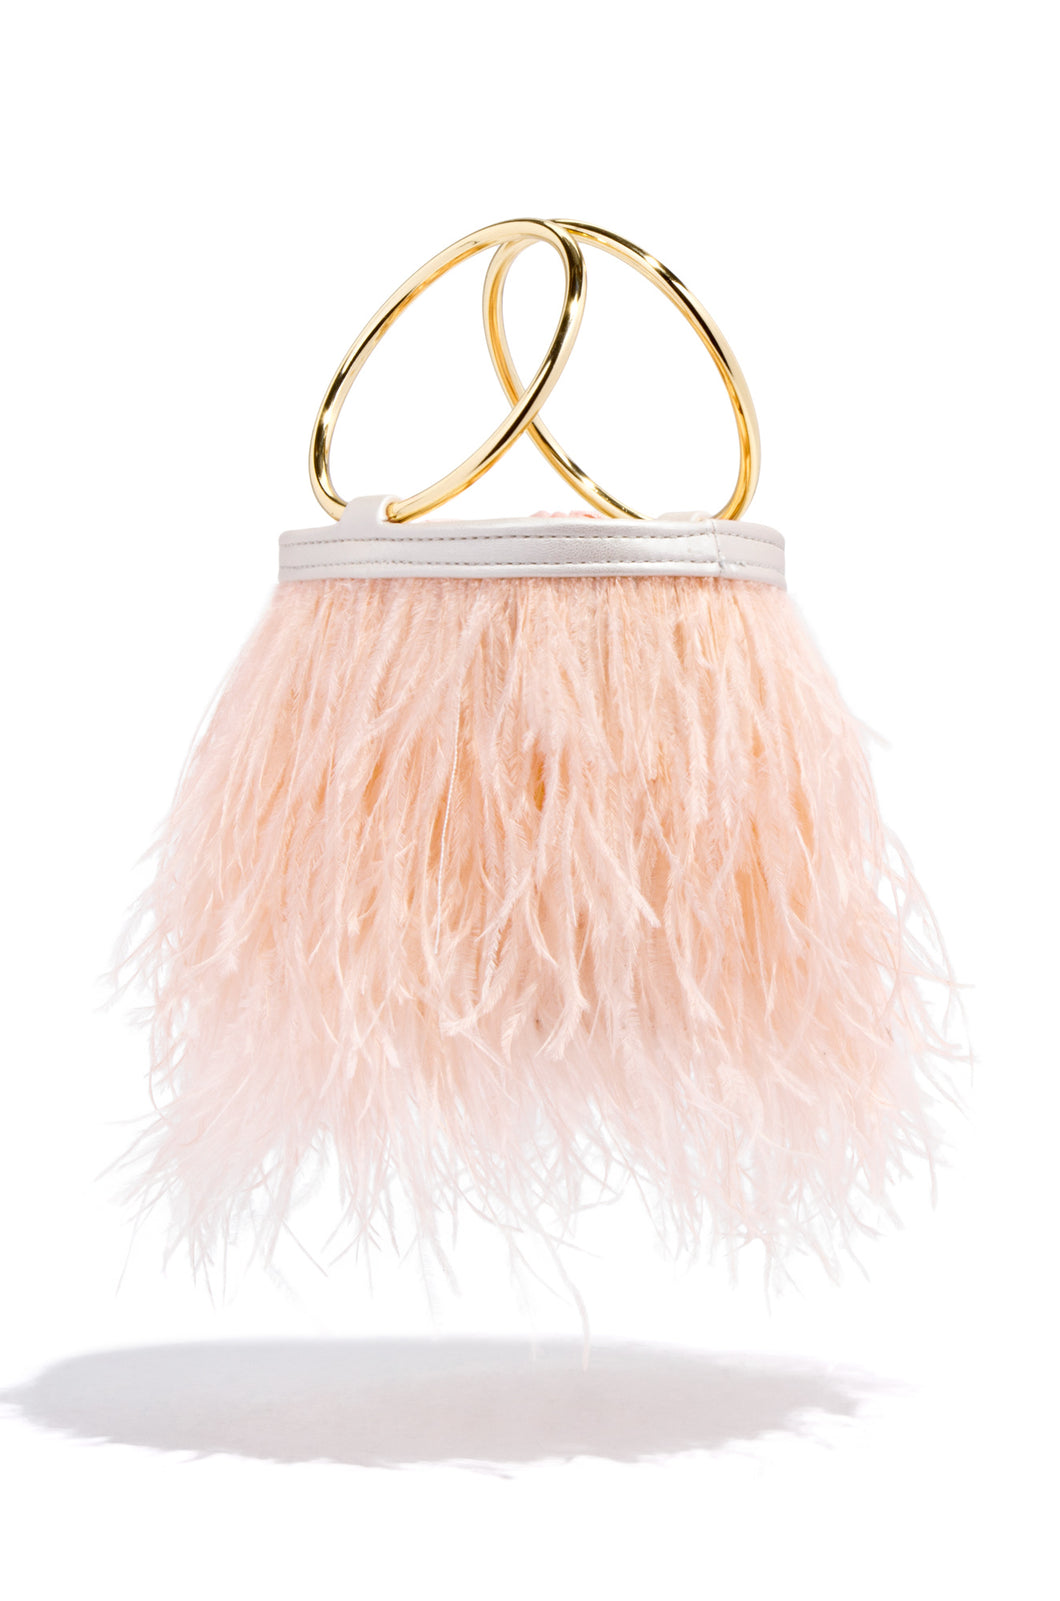 Soft Paradise Bag - Blush